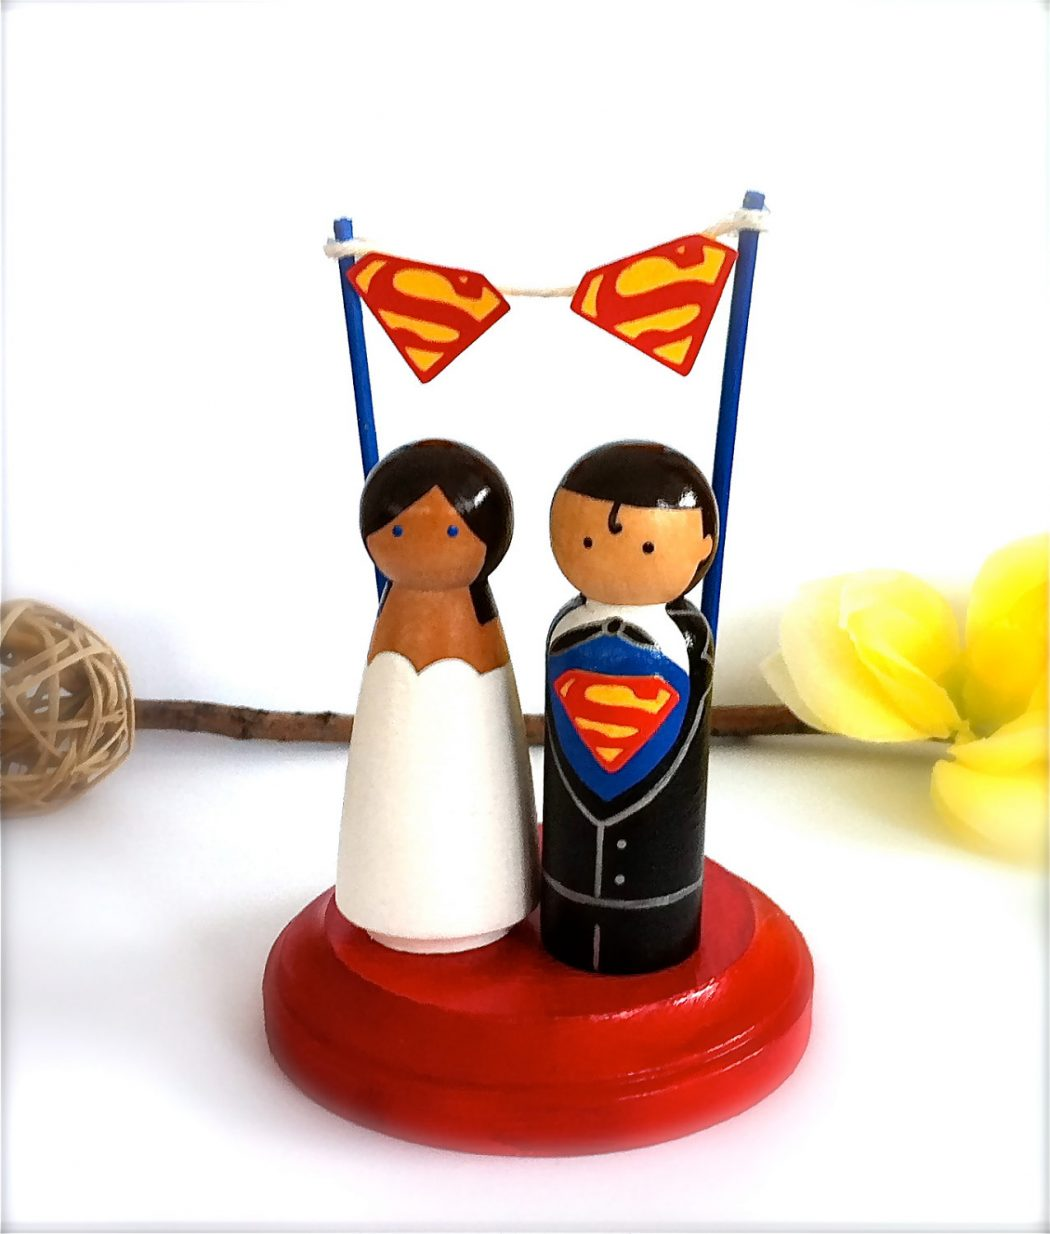 317564-superman-wedding-cake-topper-with-superman-by-creativebutterflyxox Top 10 Most Unique and Funny Wedding Cake Toppers 2017